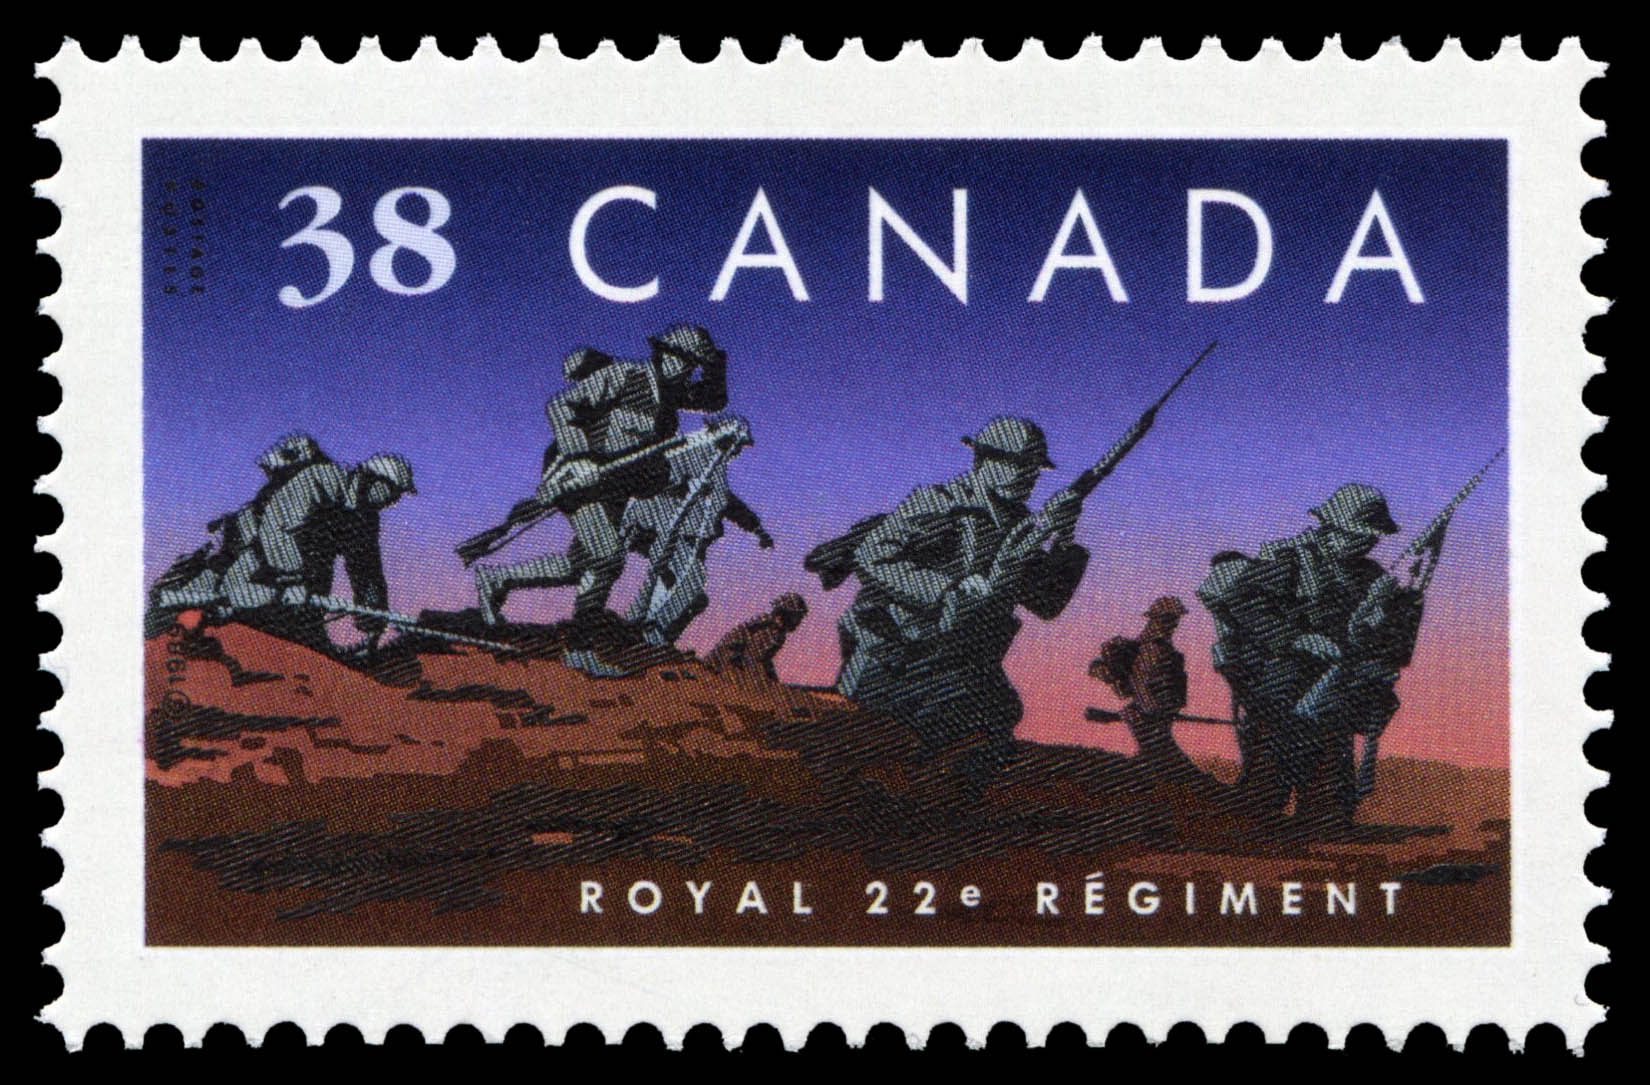 Royal 22e Regiment Canada Postage Stamp | Regiments